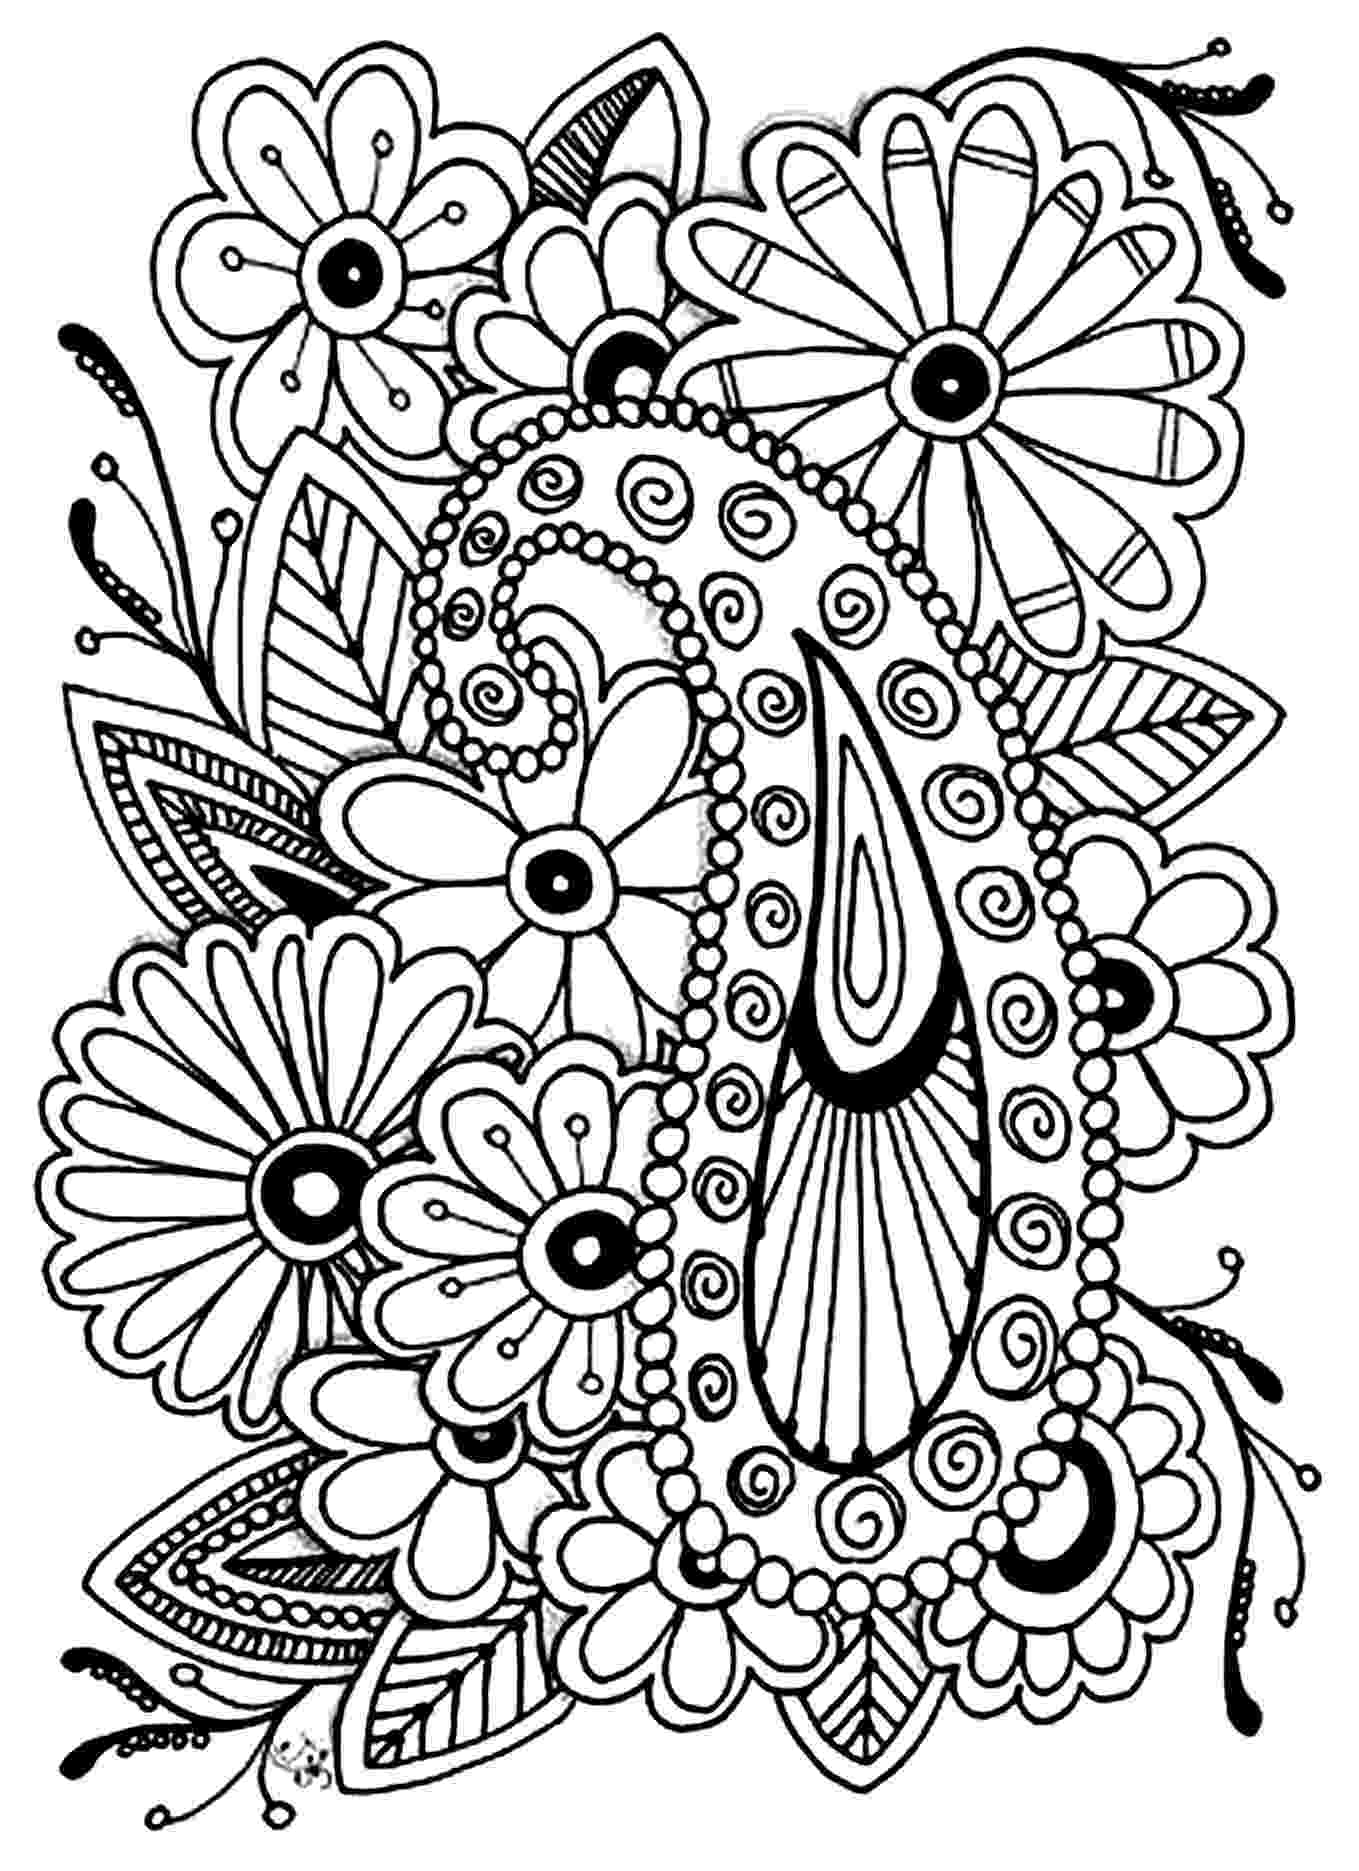 flower coloring patterns detailed flower coloring pages to download and print for free flower coloring patterns